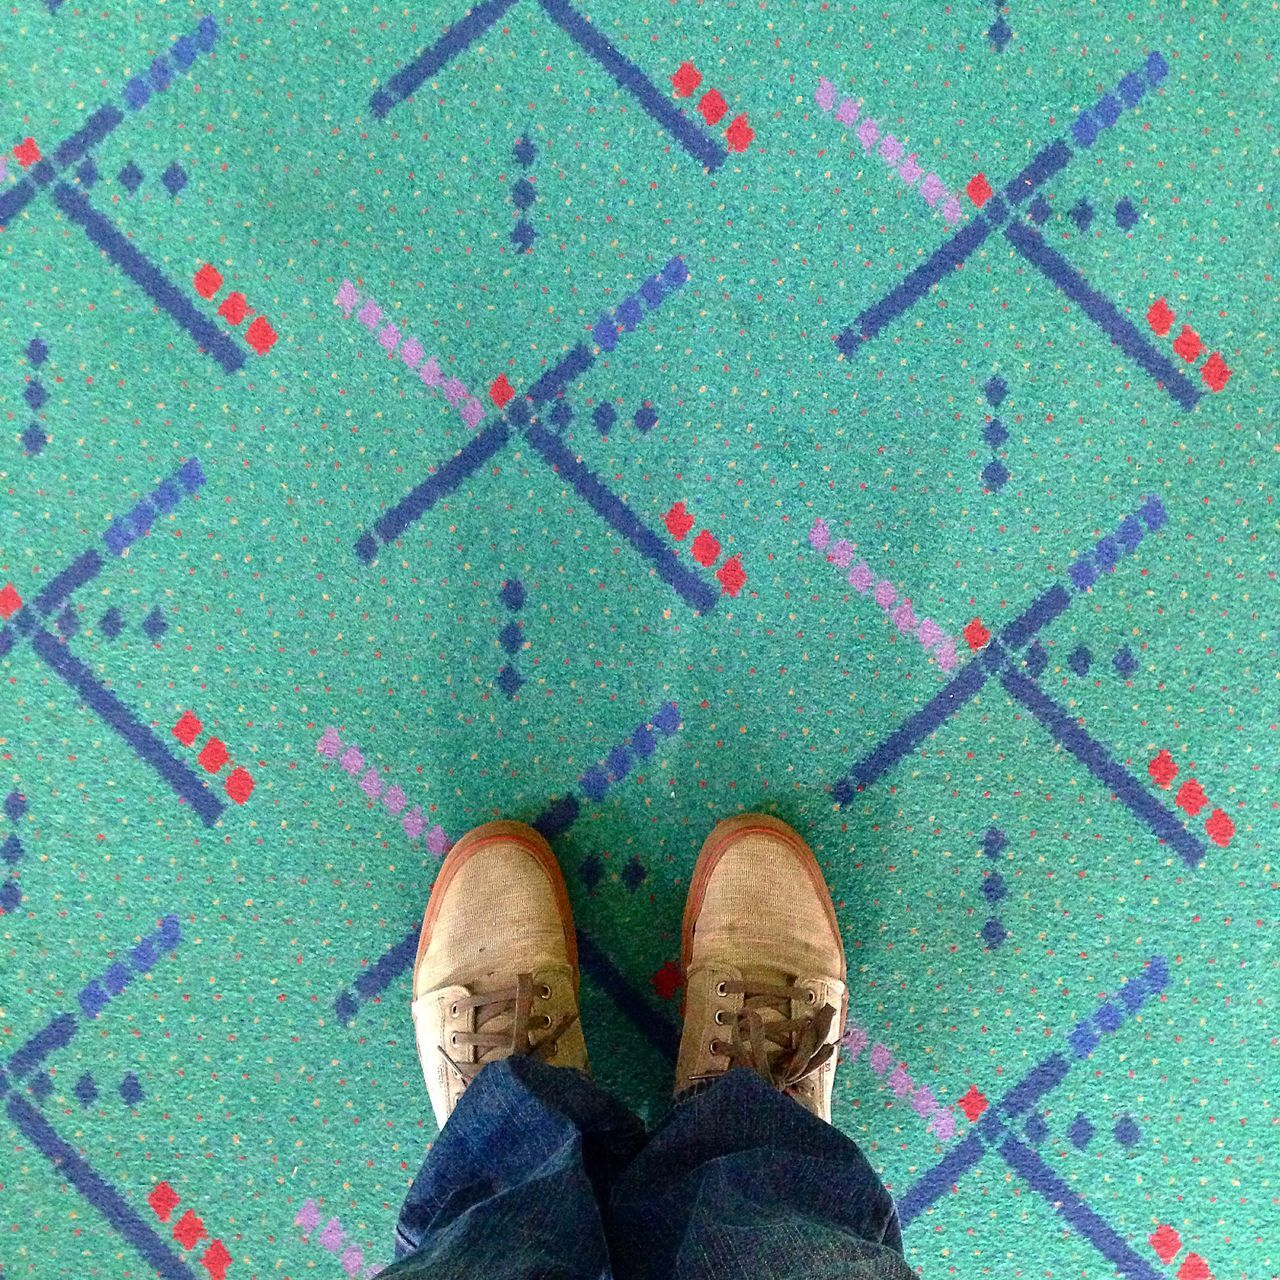 Pdx Pdxcarpet Pattern Airport Catching A Flight Taking Photos Photo Of The Day